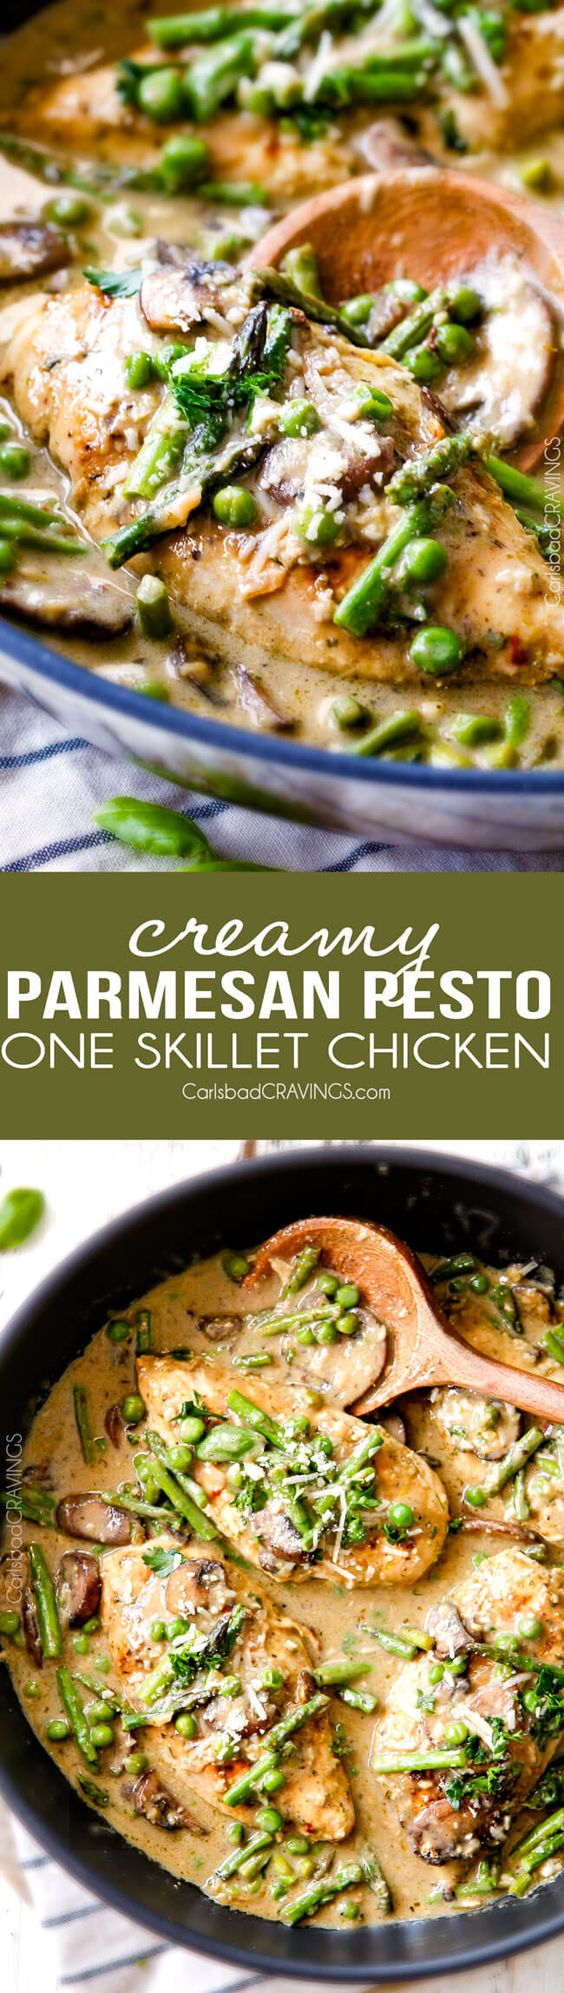 creamy parmesan pesto chicken